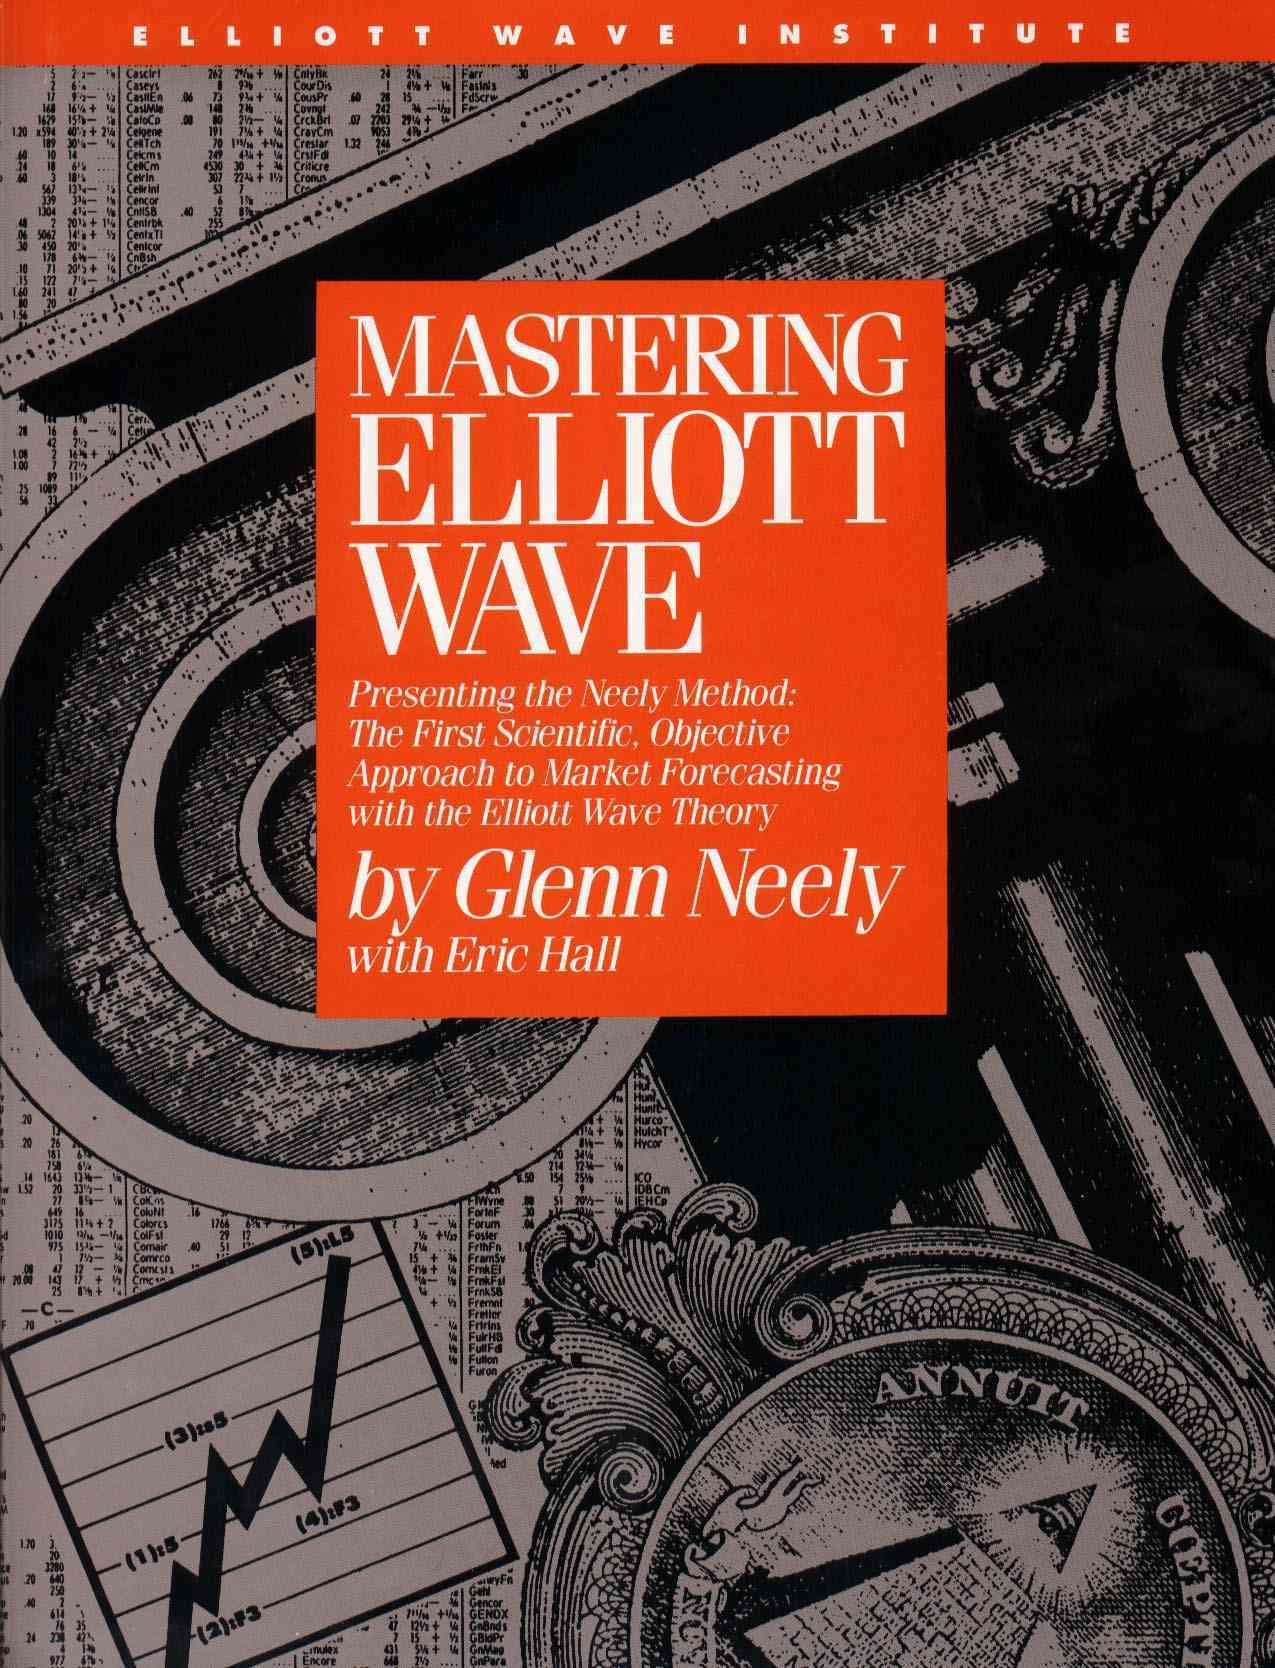 Natl Book Network Waves and Wave Mechanics